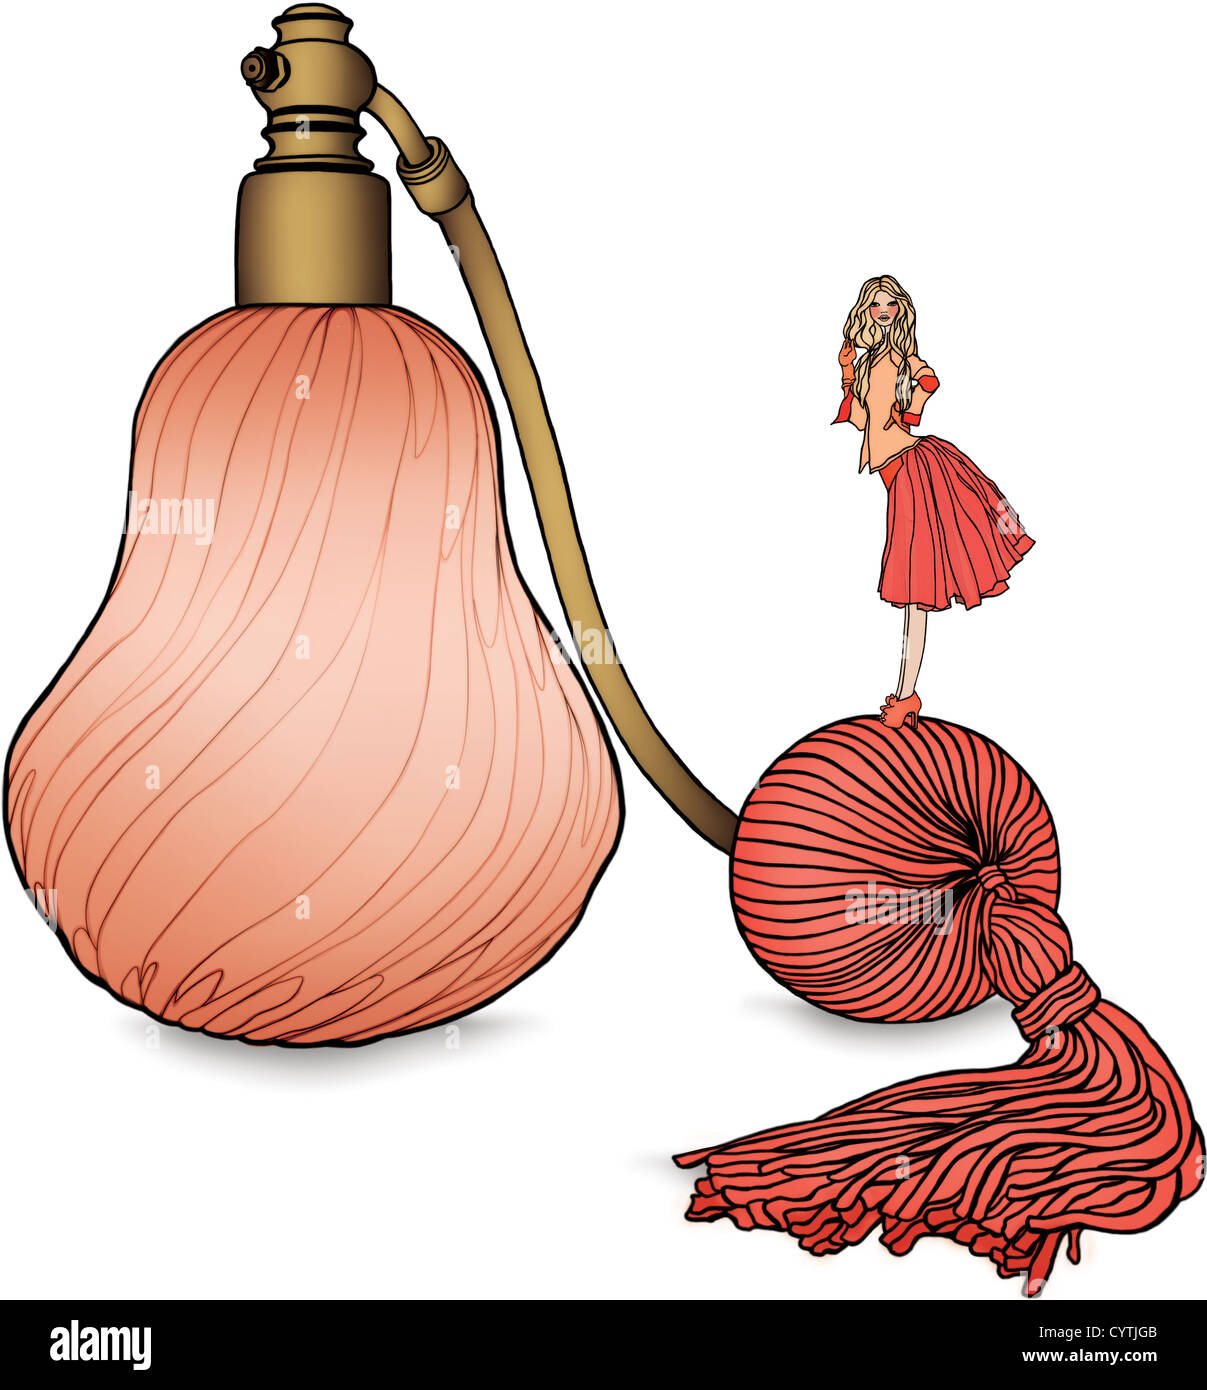 A woman standing on an atomizer of a perfume bottle - Stock Image